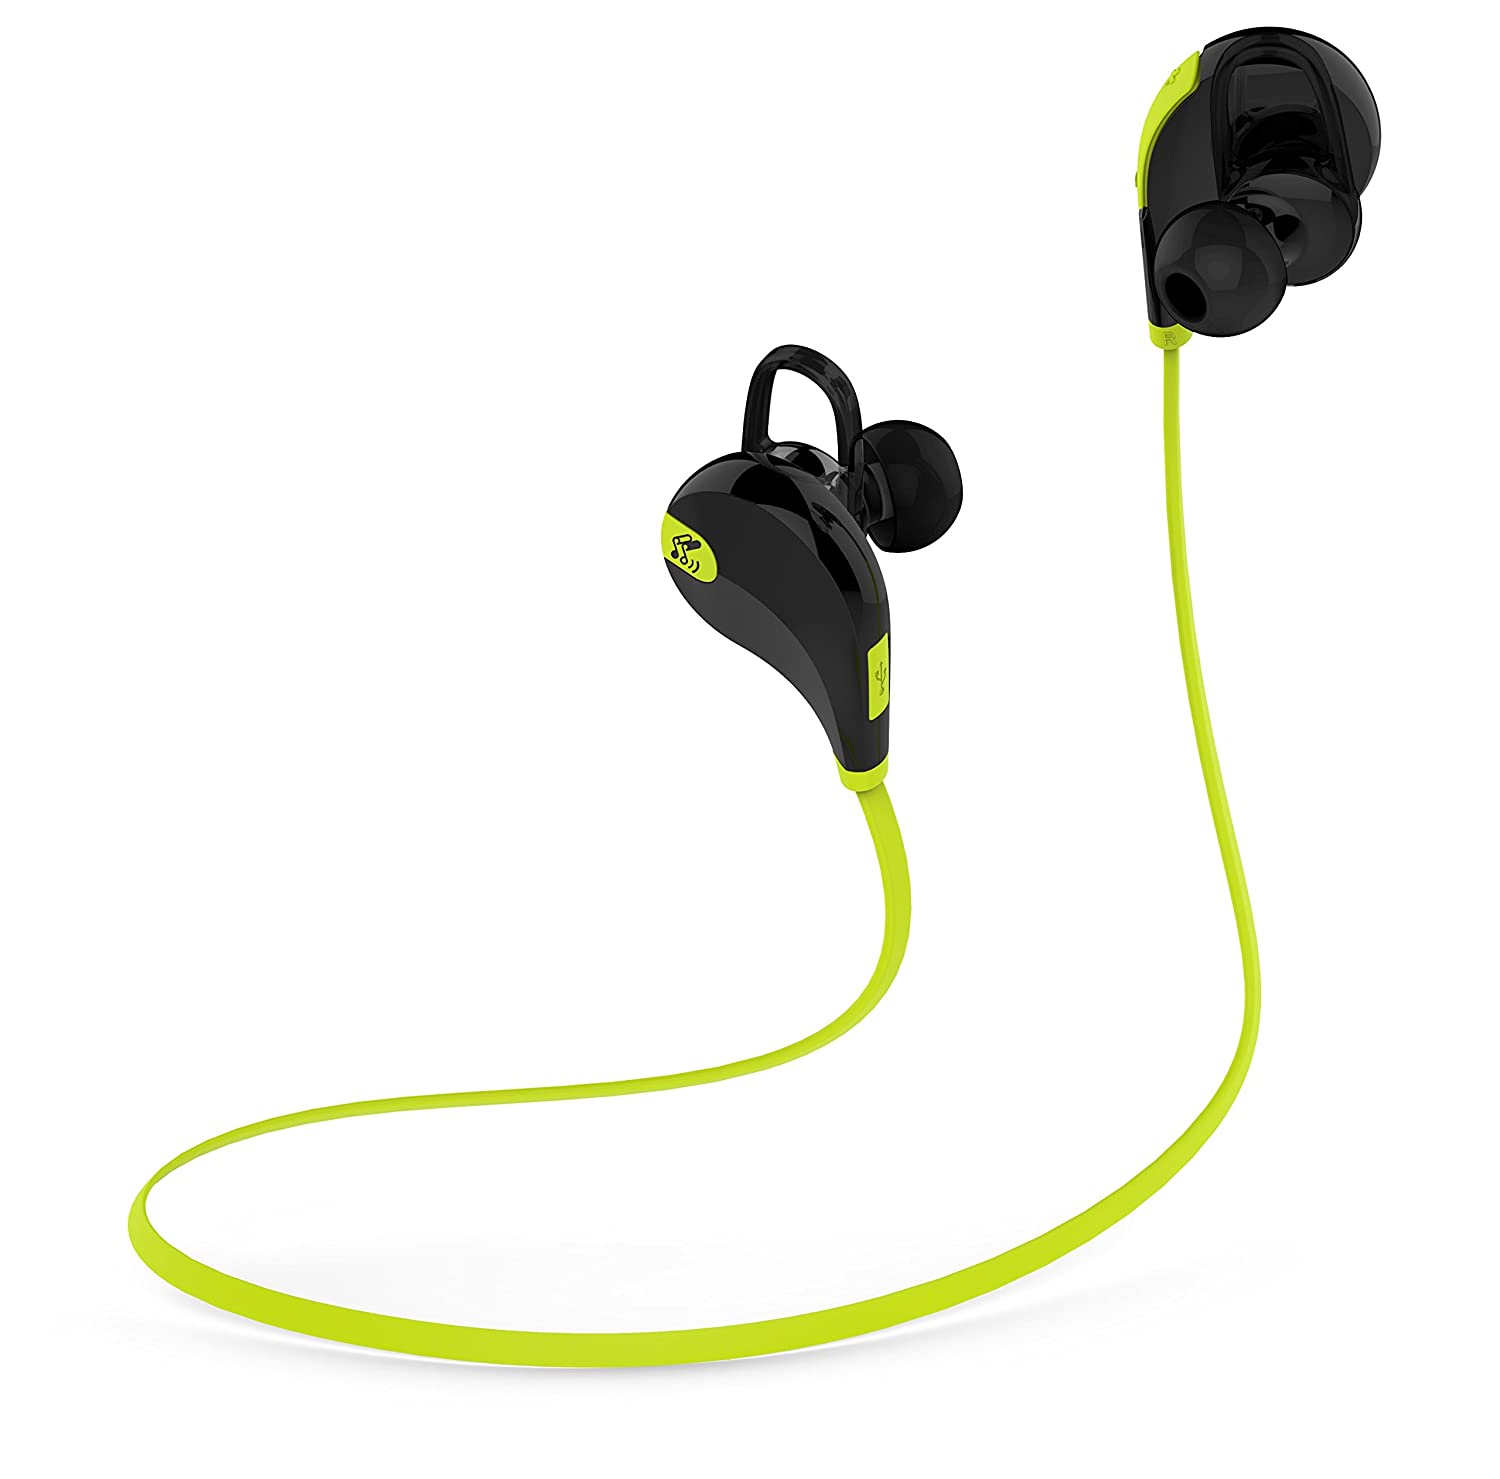 Ear buds bluetooth stereo wireless - wireless bluetooth earbuds running